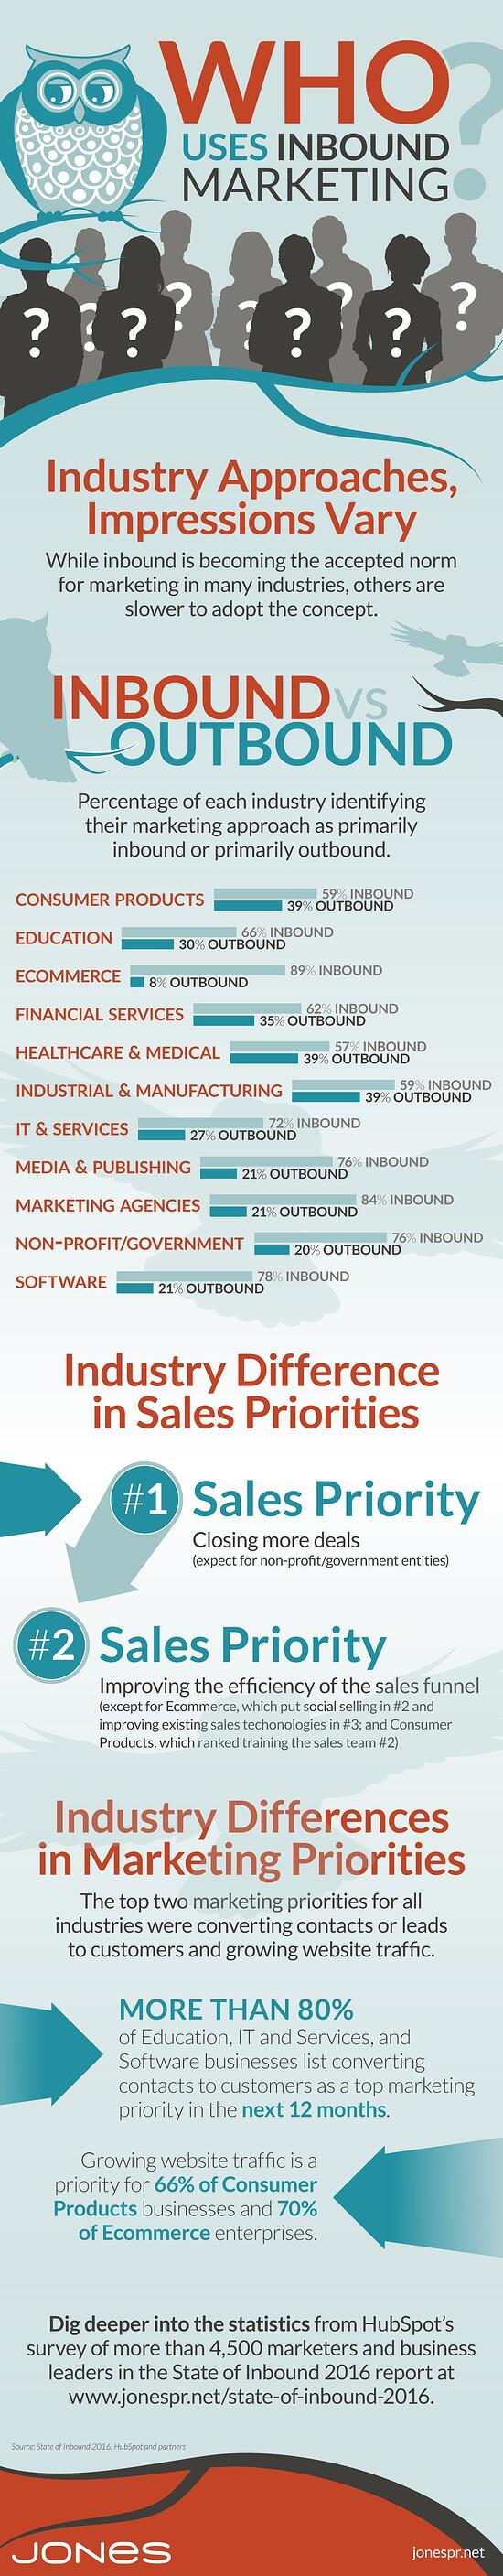 Inbound Marketing Preferences by Industry (infographic)